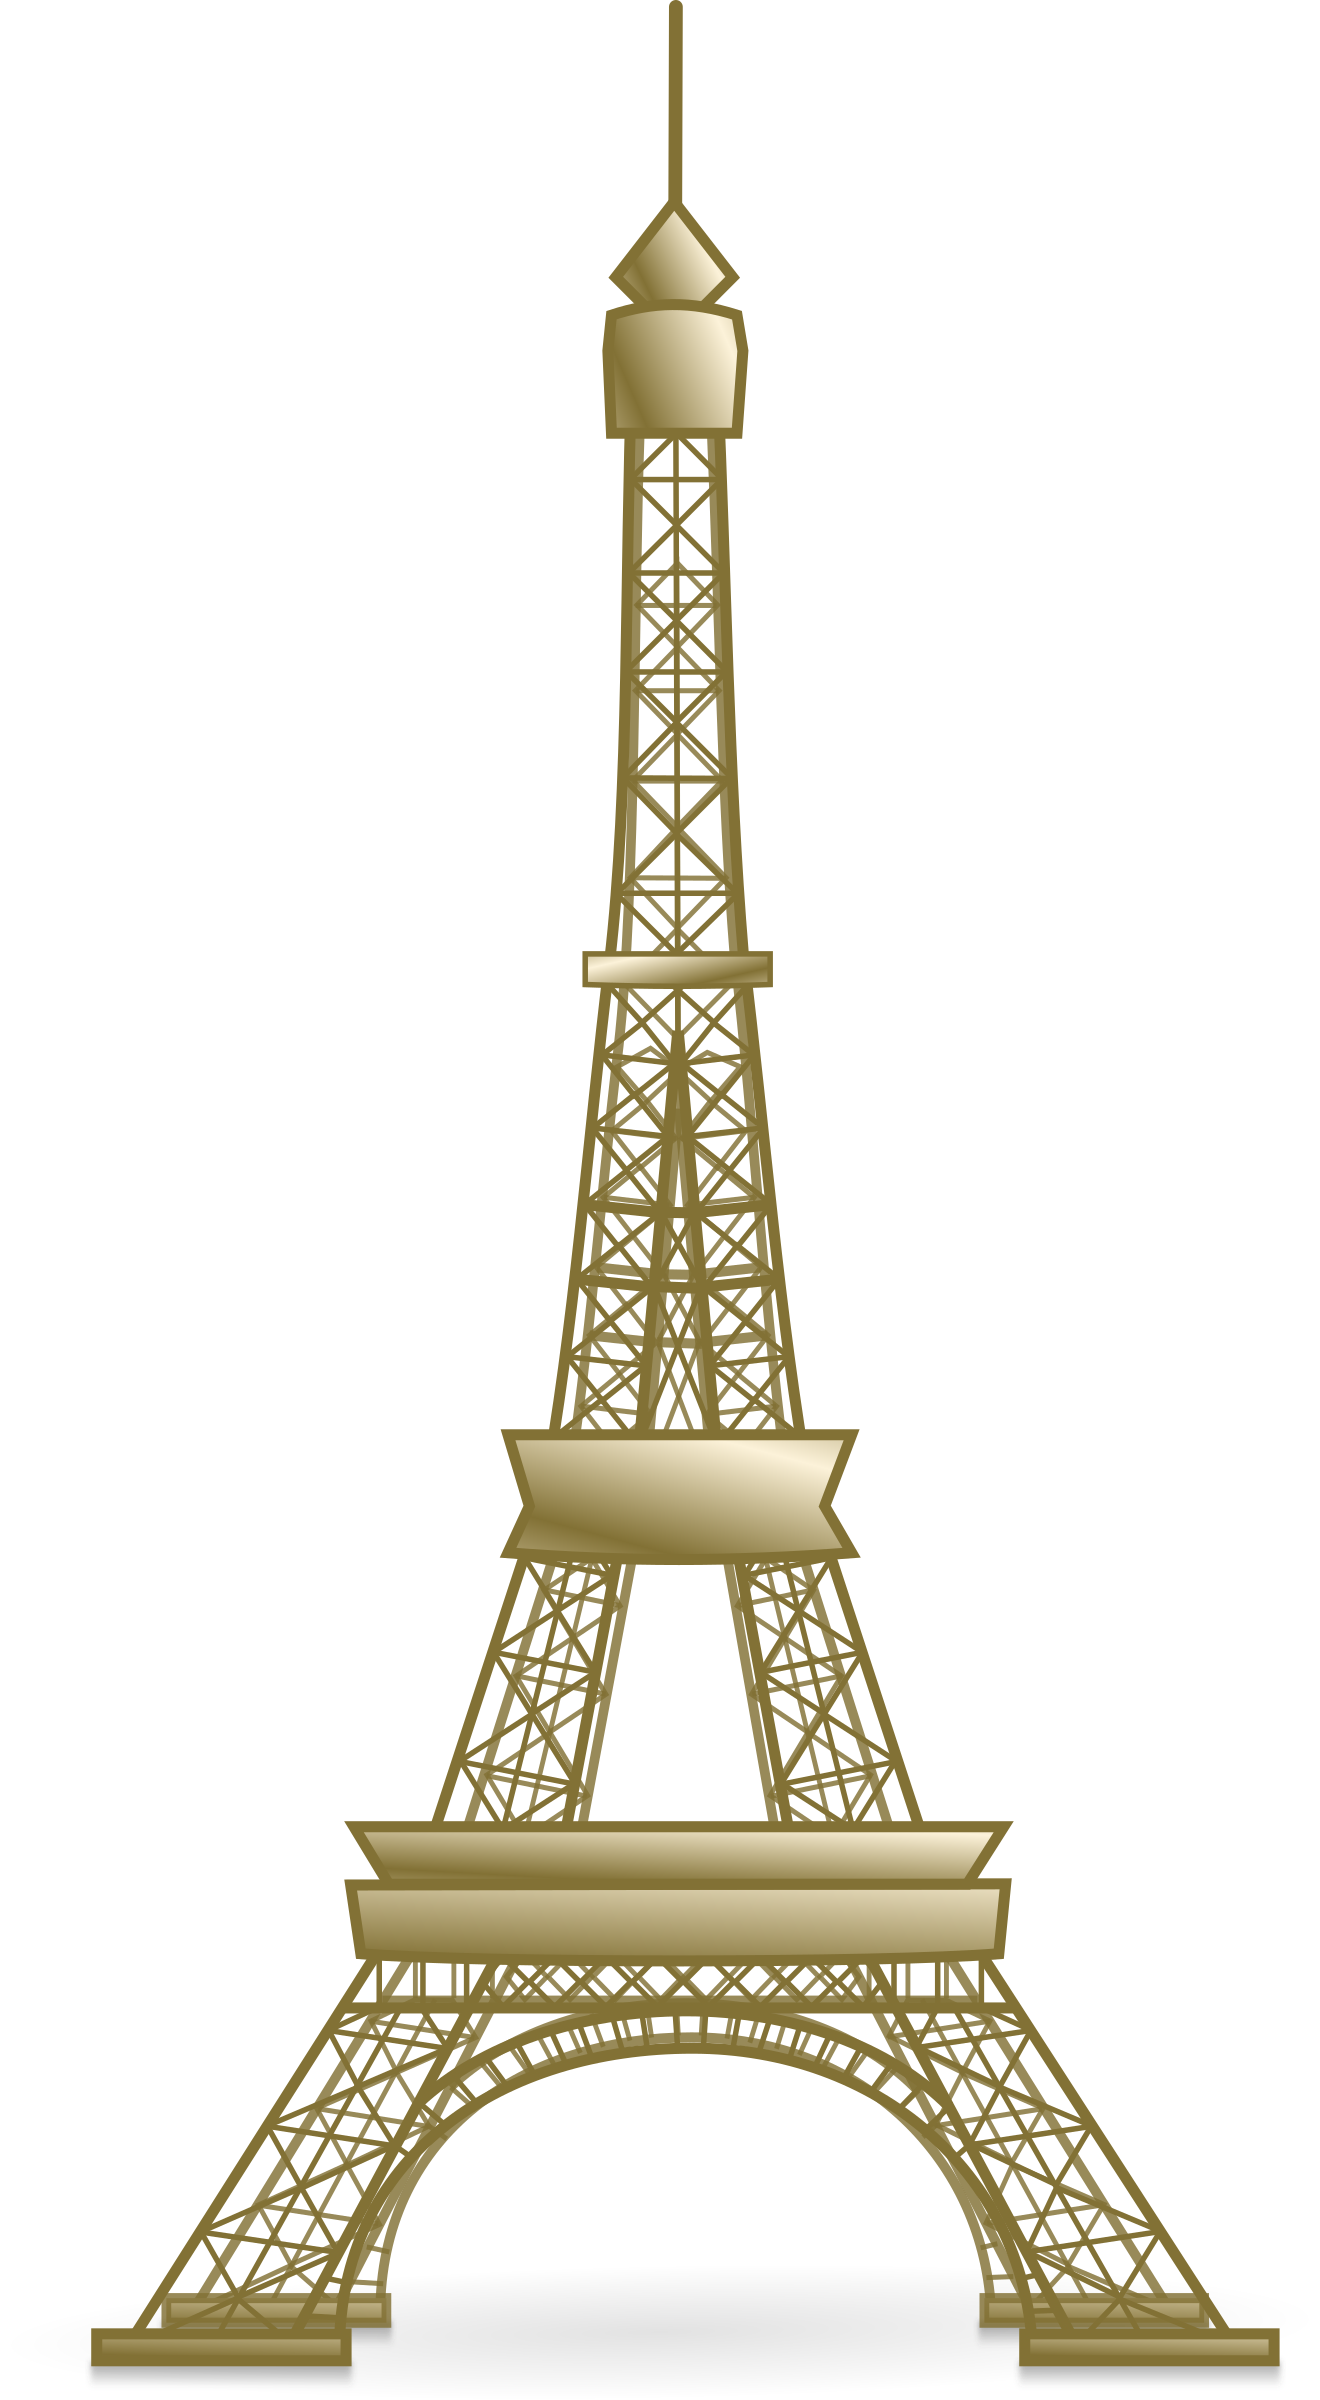 Eiffel tower clipart free picture download Free Eiffel Tower Clip Art, Download Free Clip Art, Free Clip Art on ... picture download